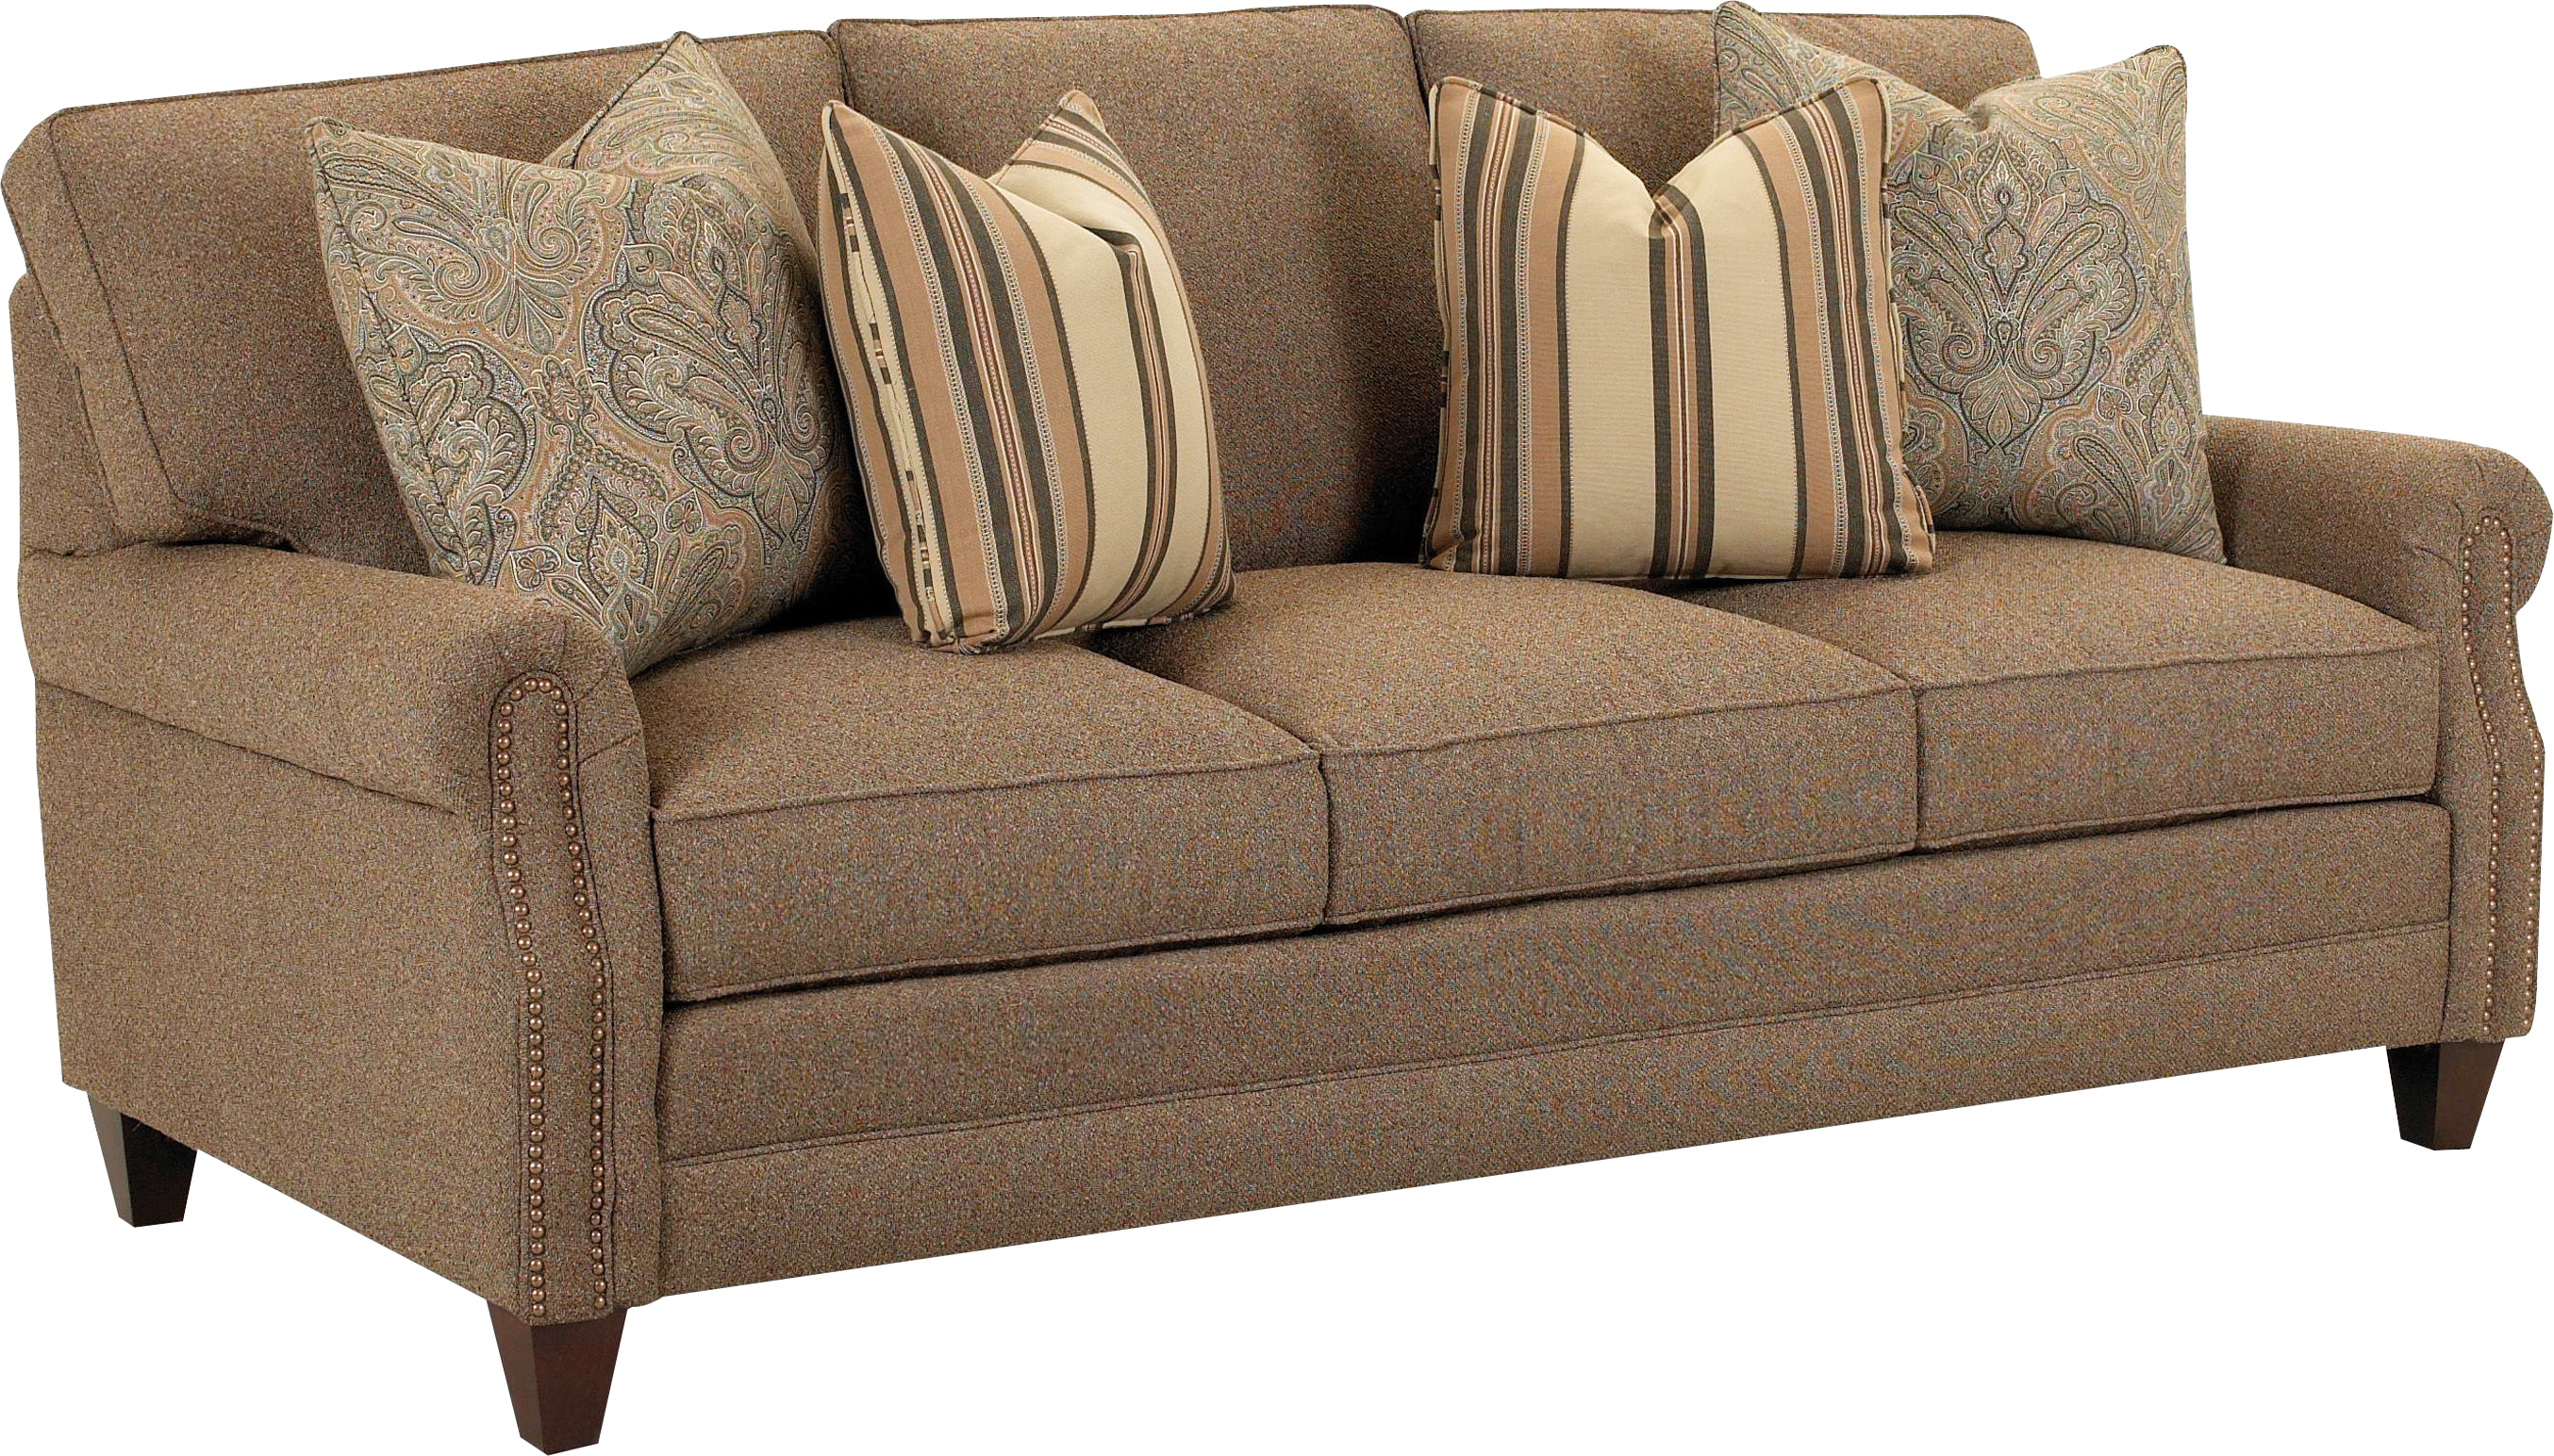 Sofa Hd Furniture Png Transparent - PNG HD Of A Bed